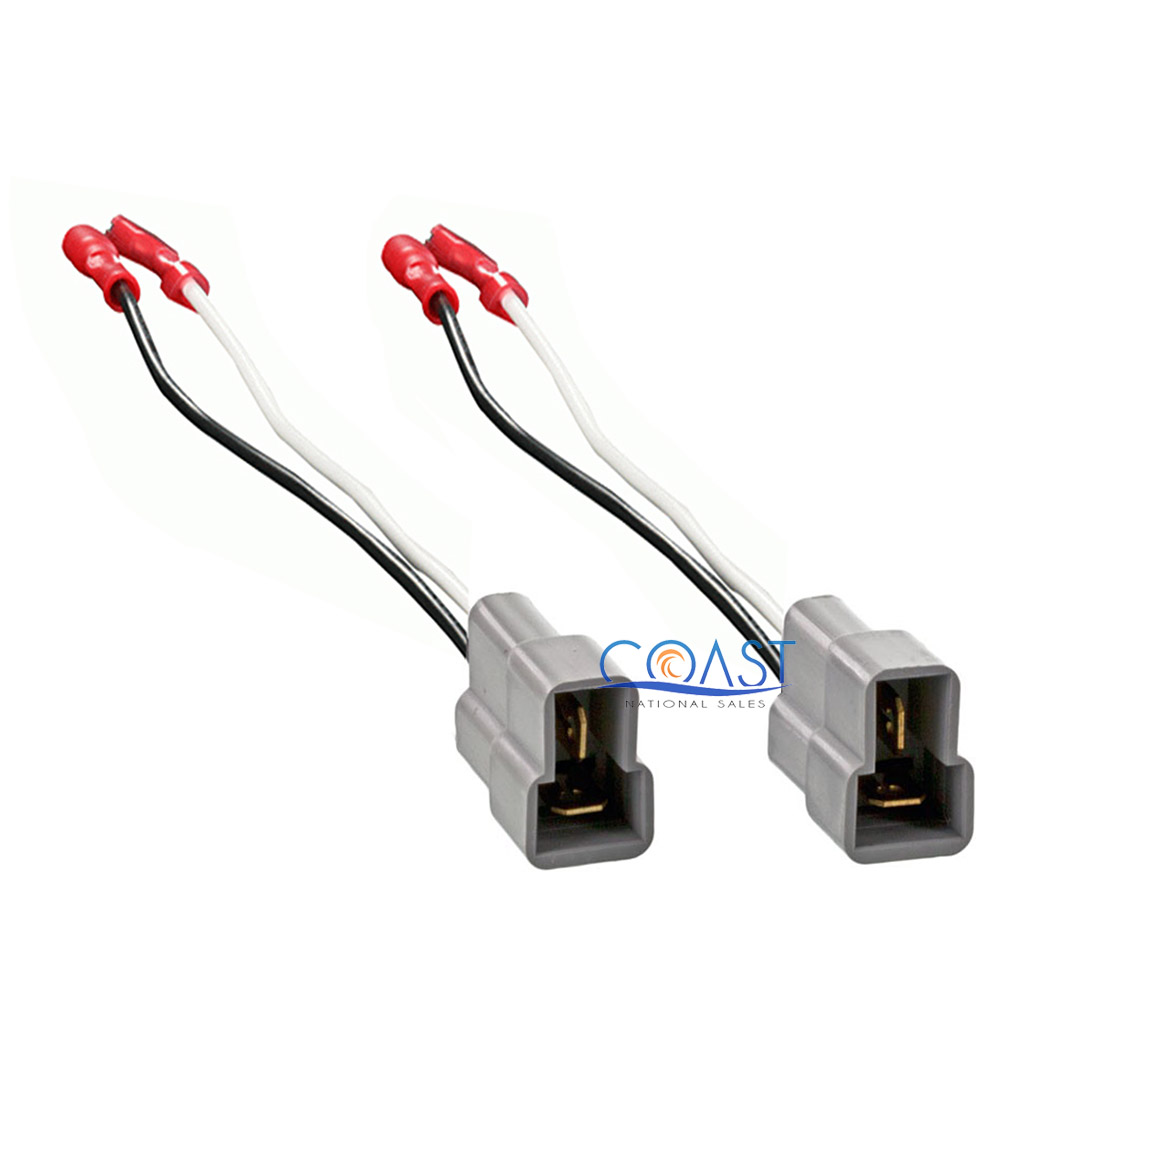 hight resolution of car audio speaker wire harness connectors for chevy ford isuzu kia wiring harness connectors car audio